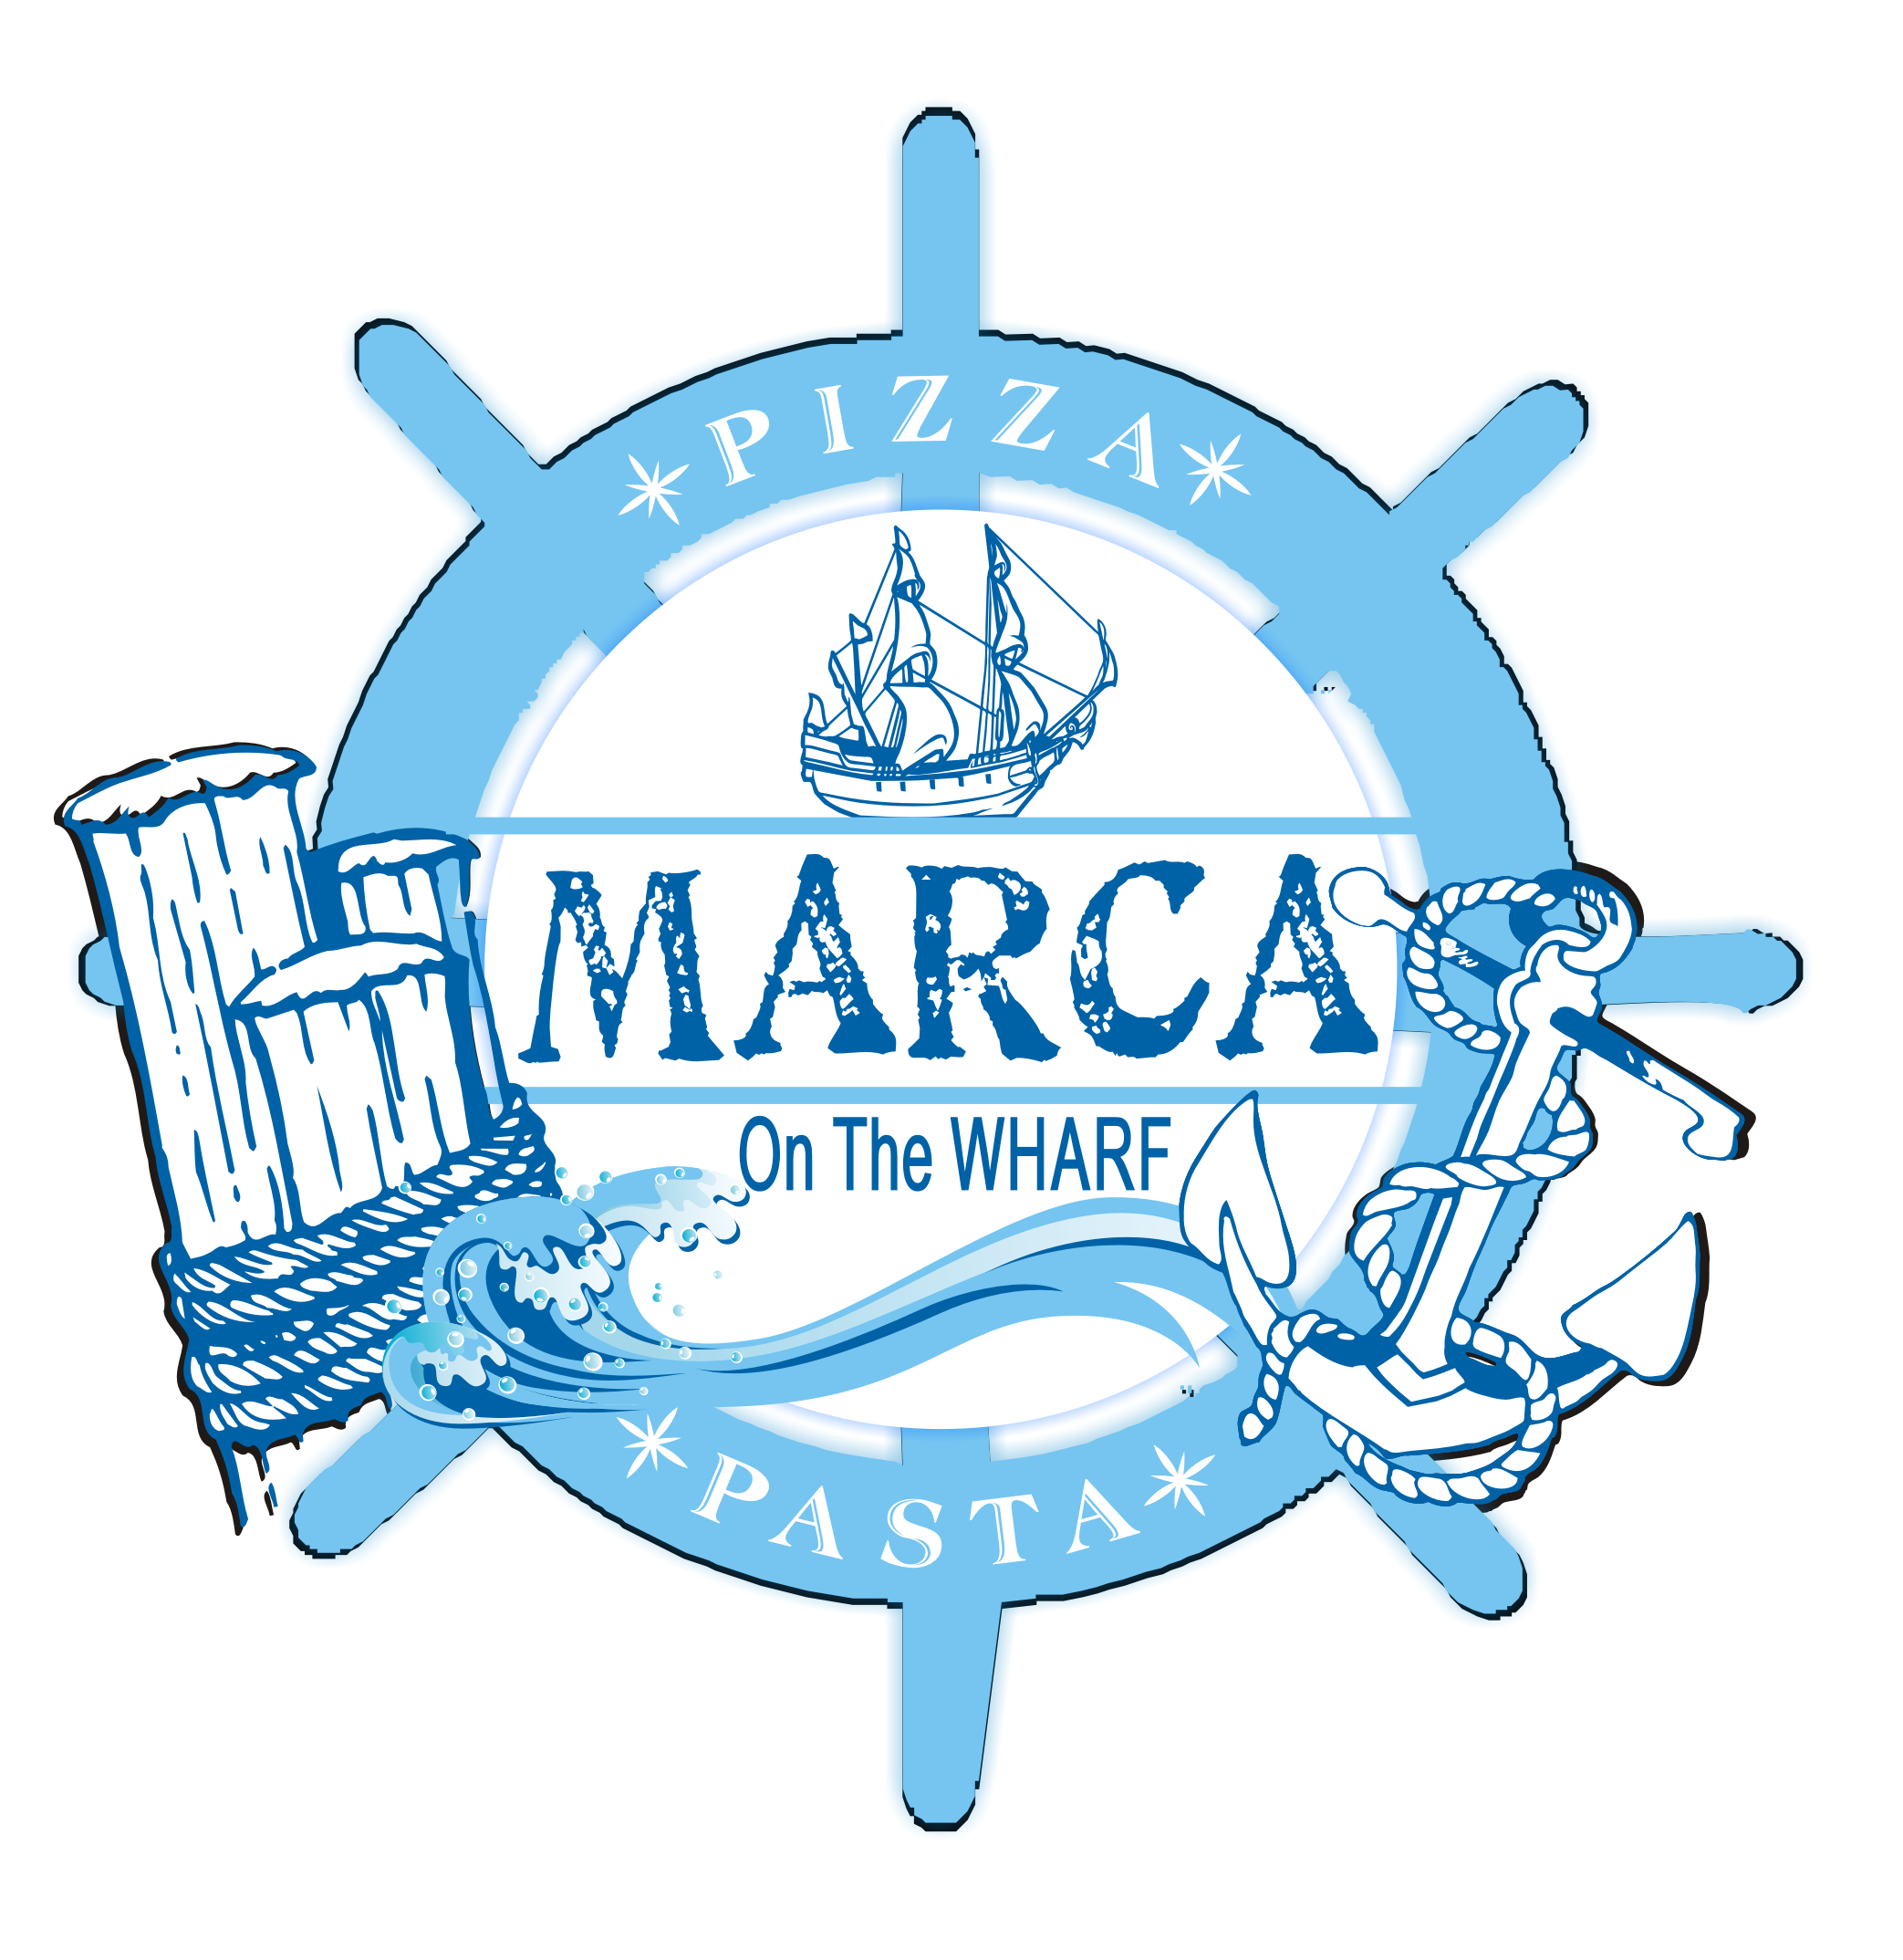 Logo Design by innocentangel707 - Entry No. 11 in the Logo Design Contest New Logo Design for Marca on the Wharf.